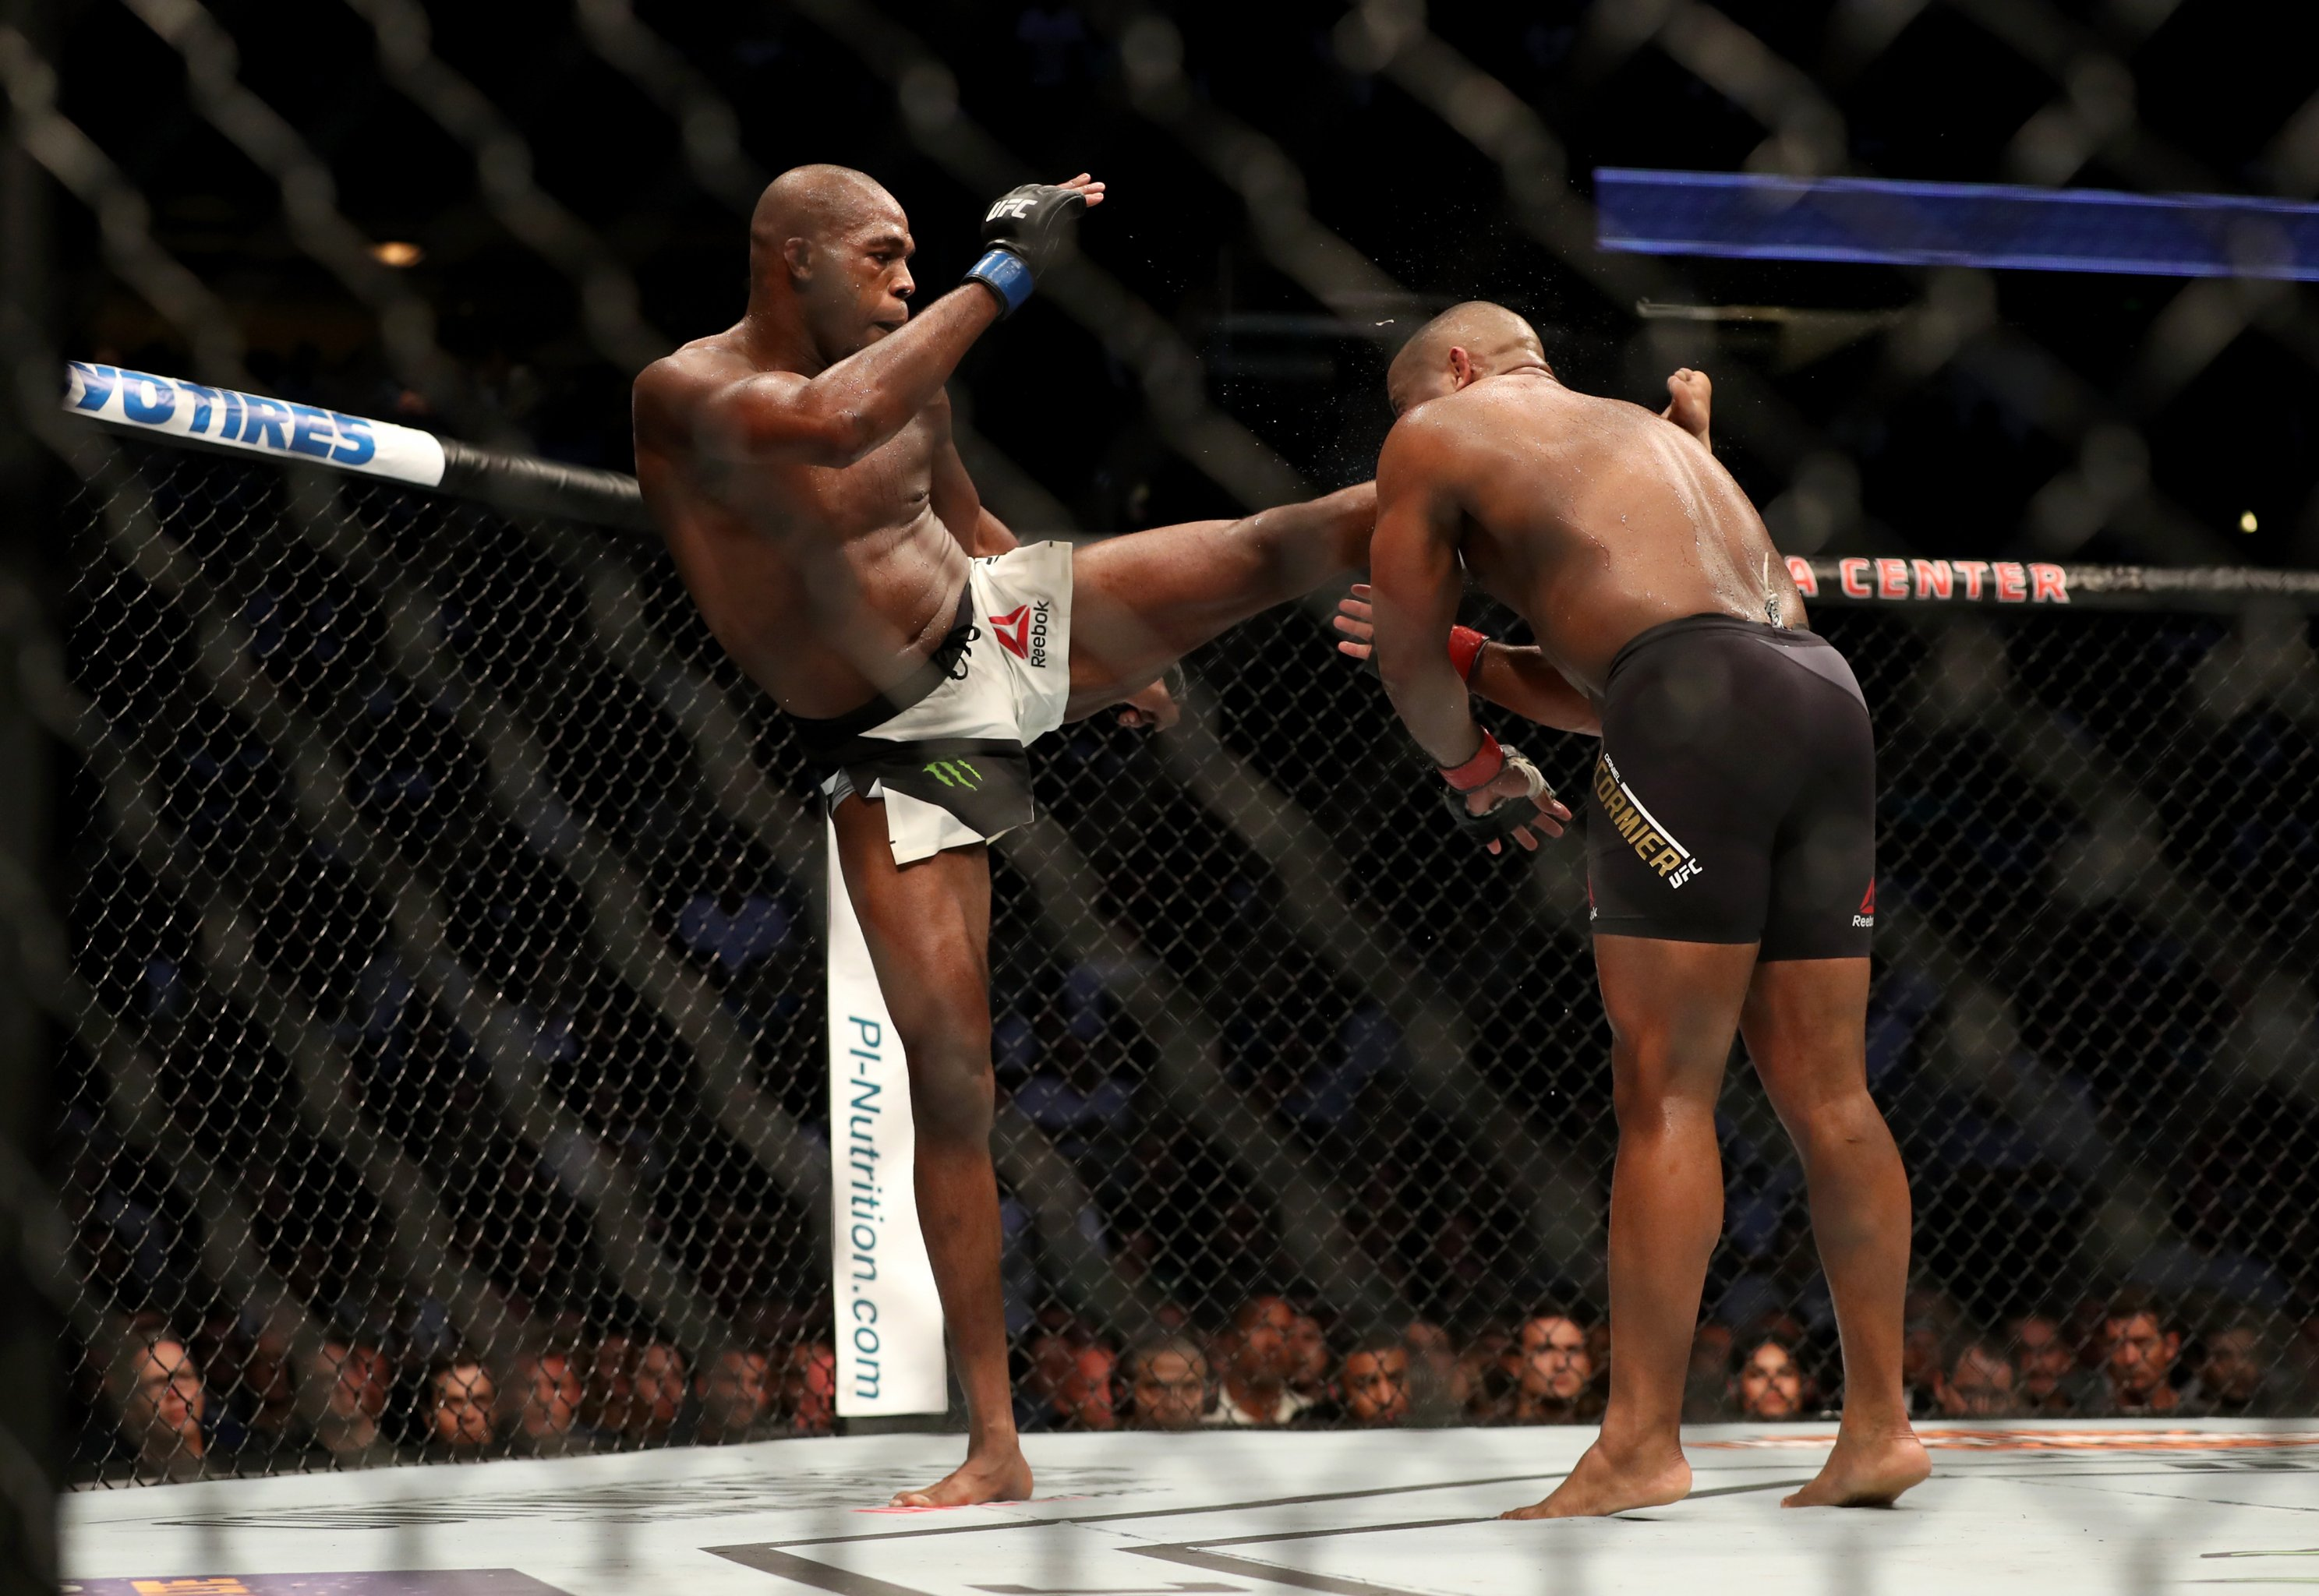 UFC 214 Results: The Real Winners and Losers from Jones vs. Cormier 2 | Bleacher Report | Latest News, Videos and Highlights